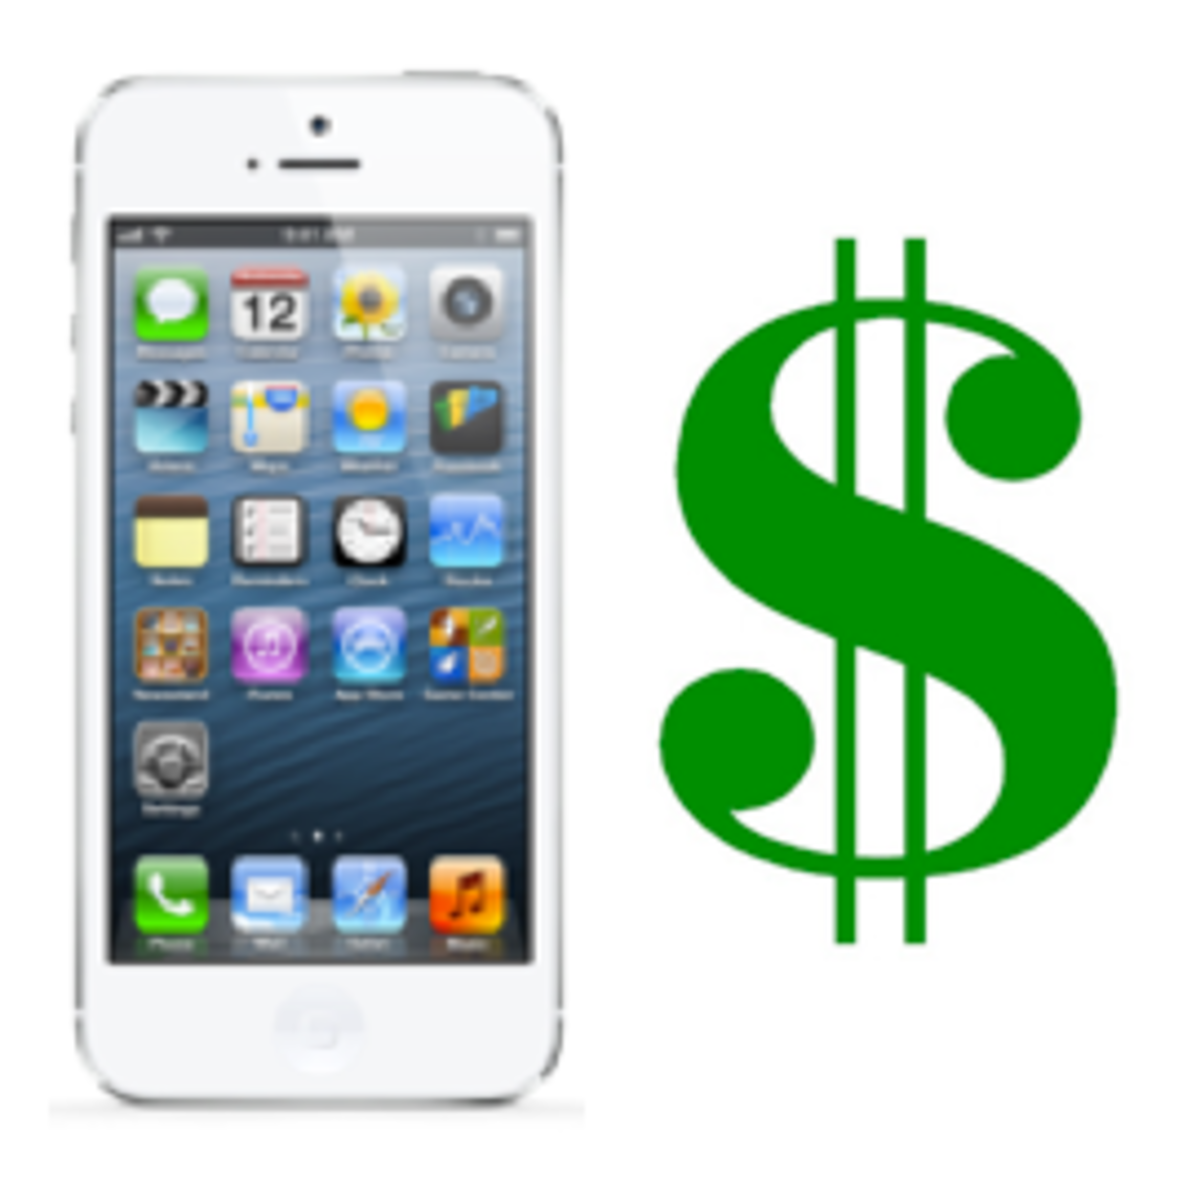 Make Easy Money On Your Smartphone the Fun Way